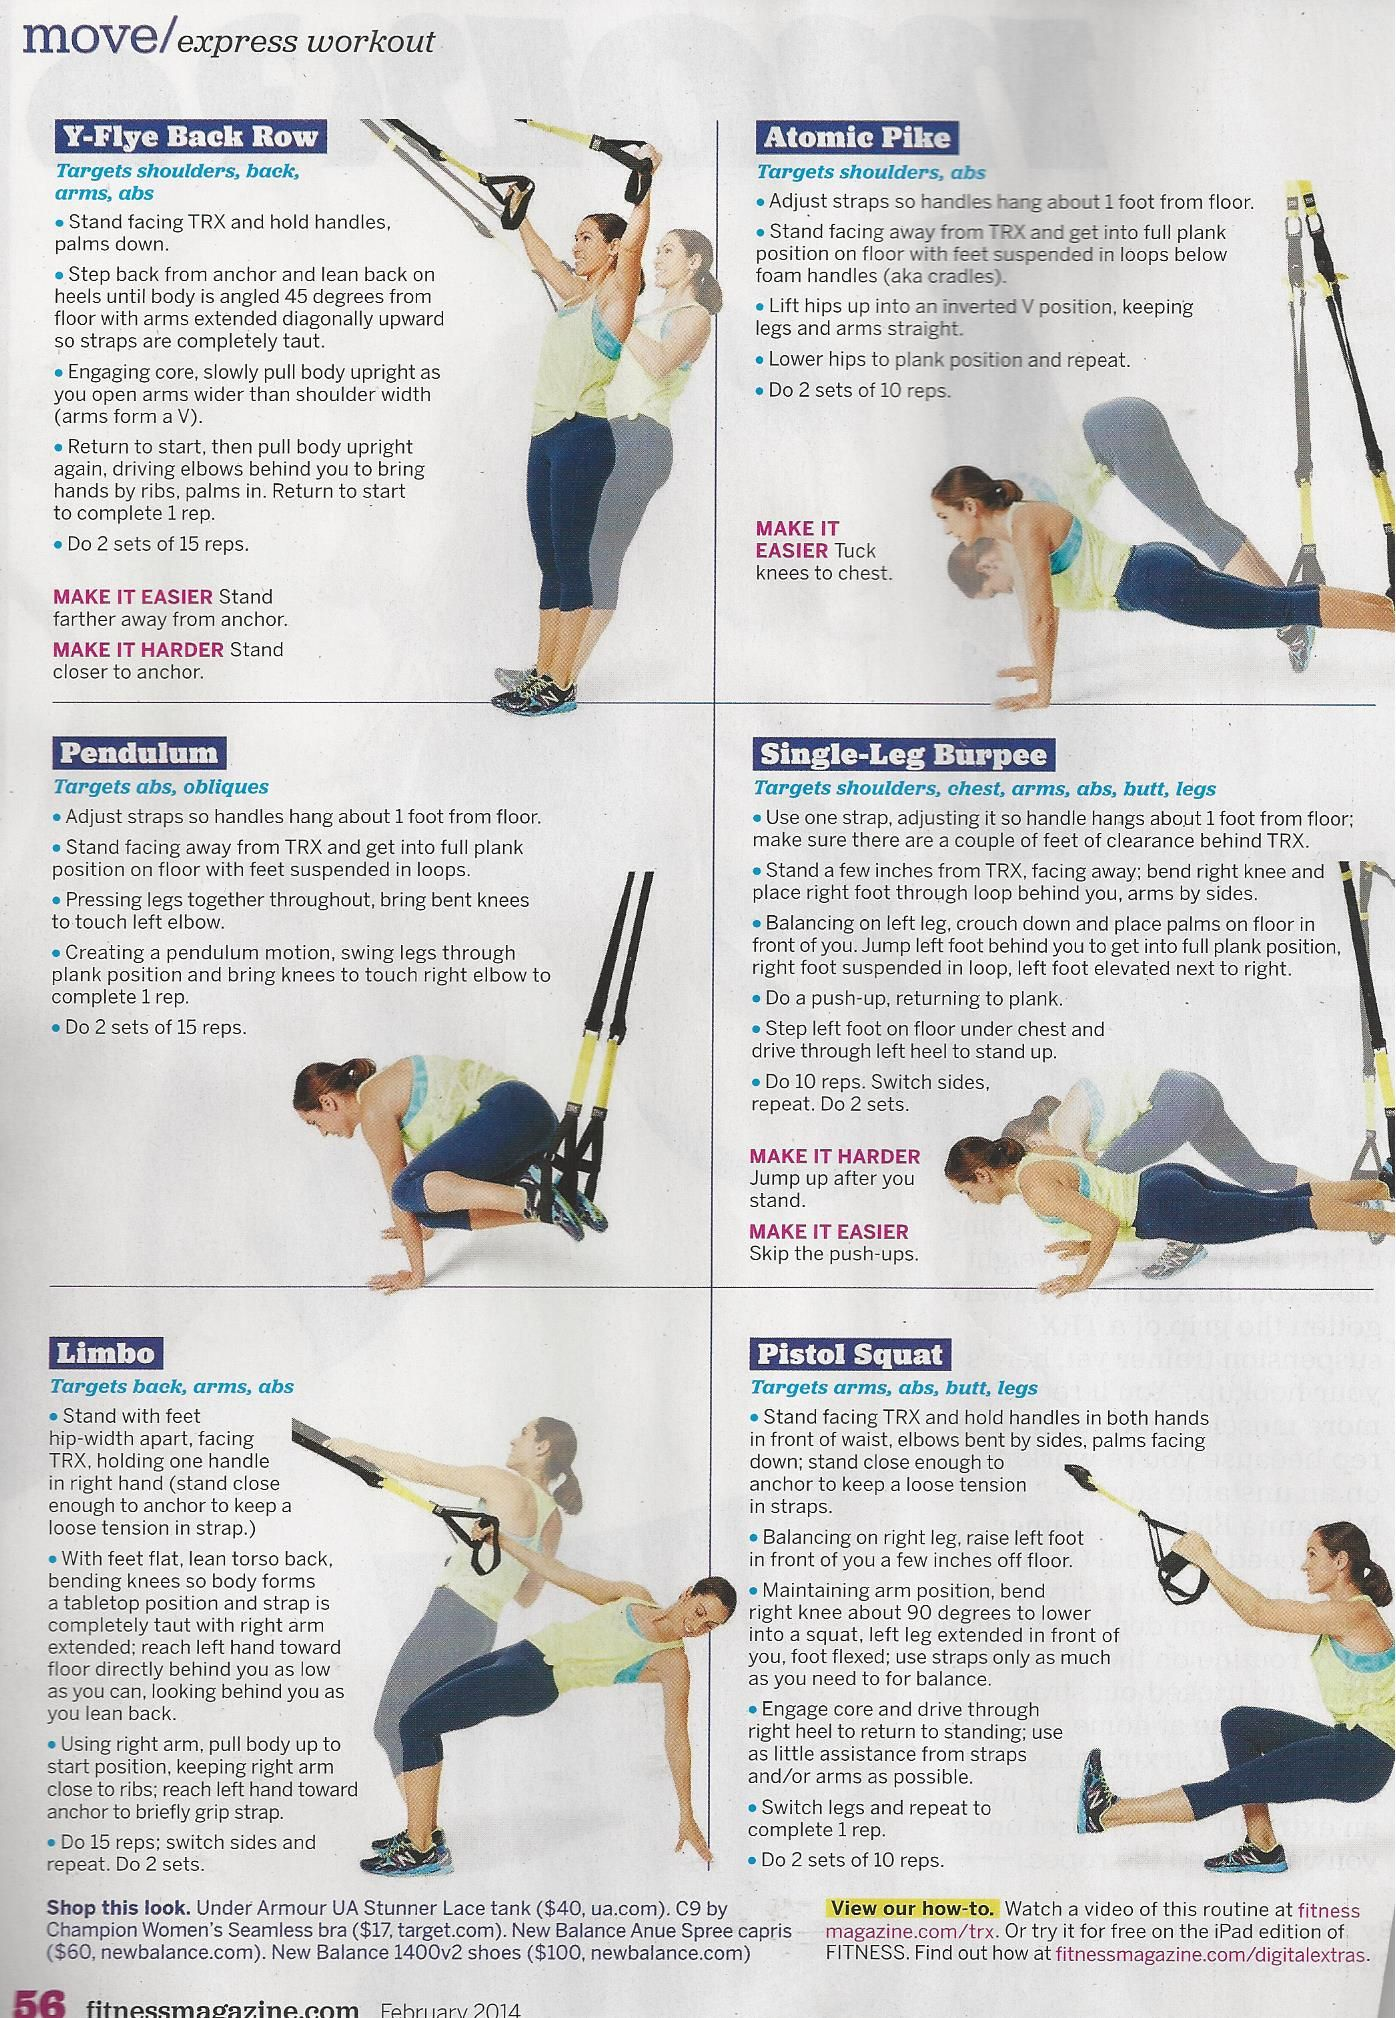 photograph about Printable Trx Workout titled Printable Pattern trx routines Kind Work out Trx exercise session